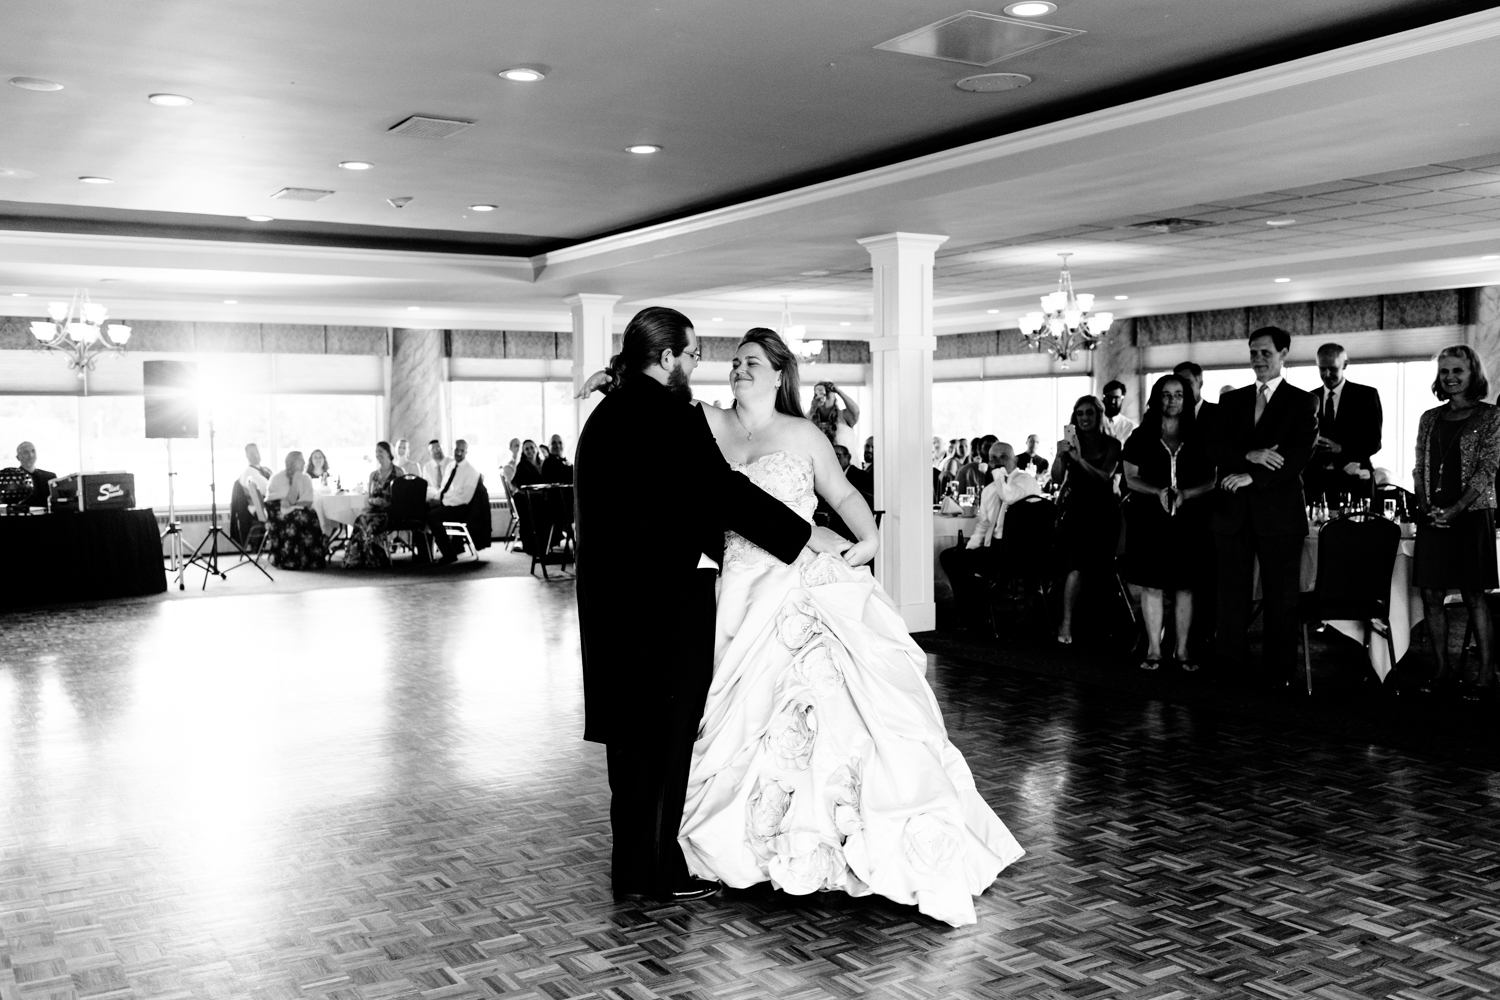 A black and white image of the bride and groom sharing their first dance.